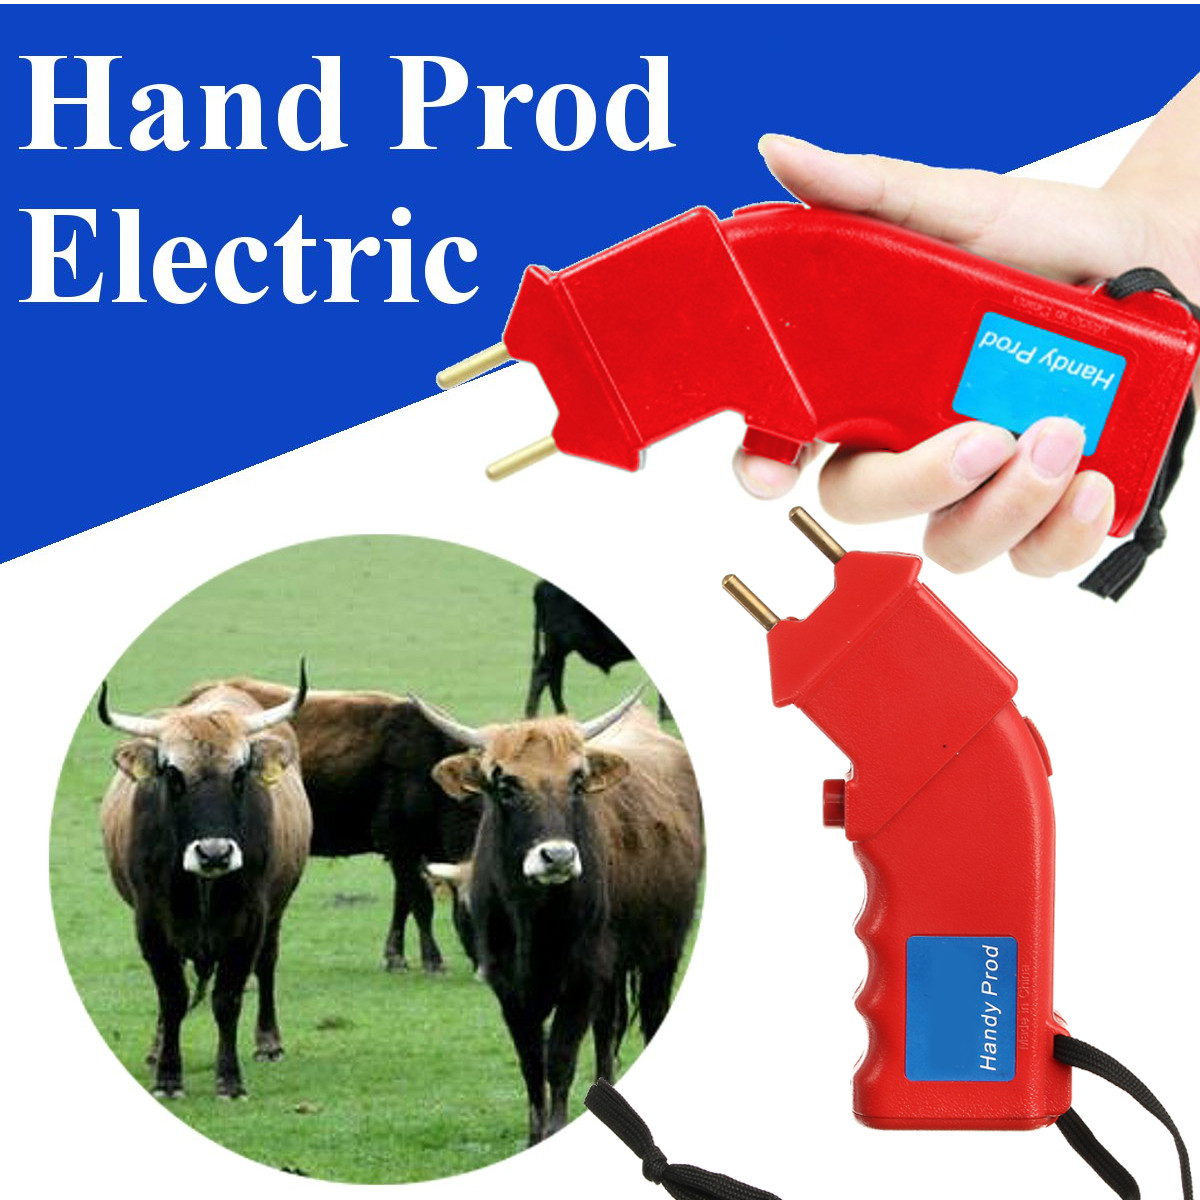 6V 2.4W Electric Hand Cattle Prod Shock Cattle Prod Goat Cattle Pig Livestock Equipment